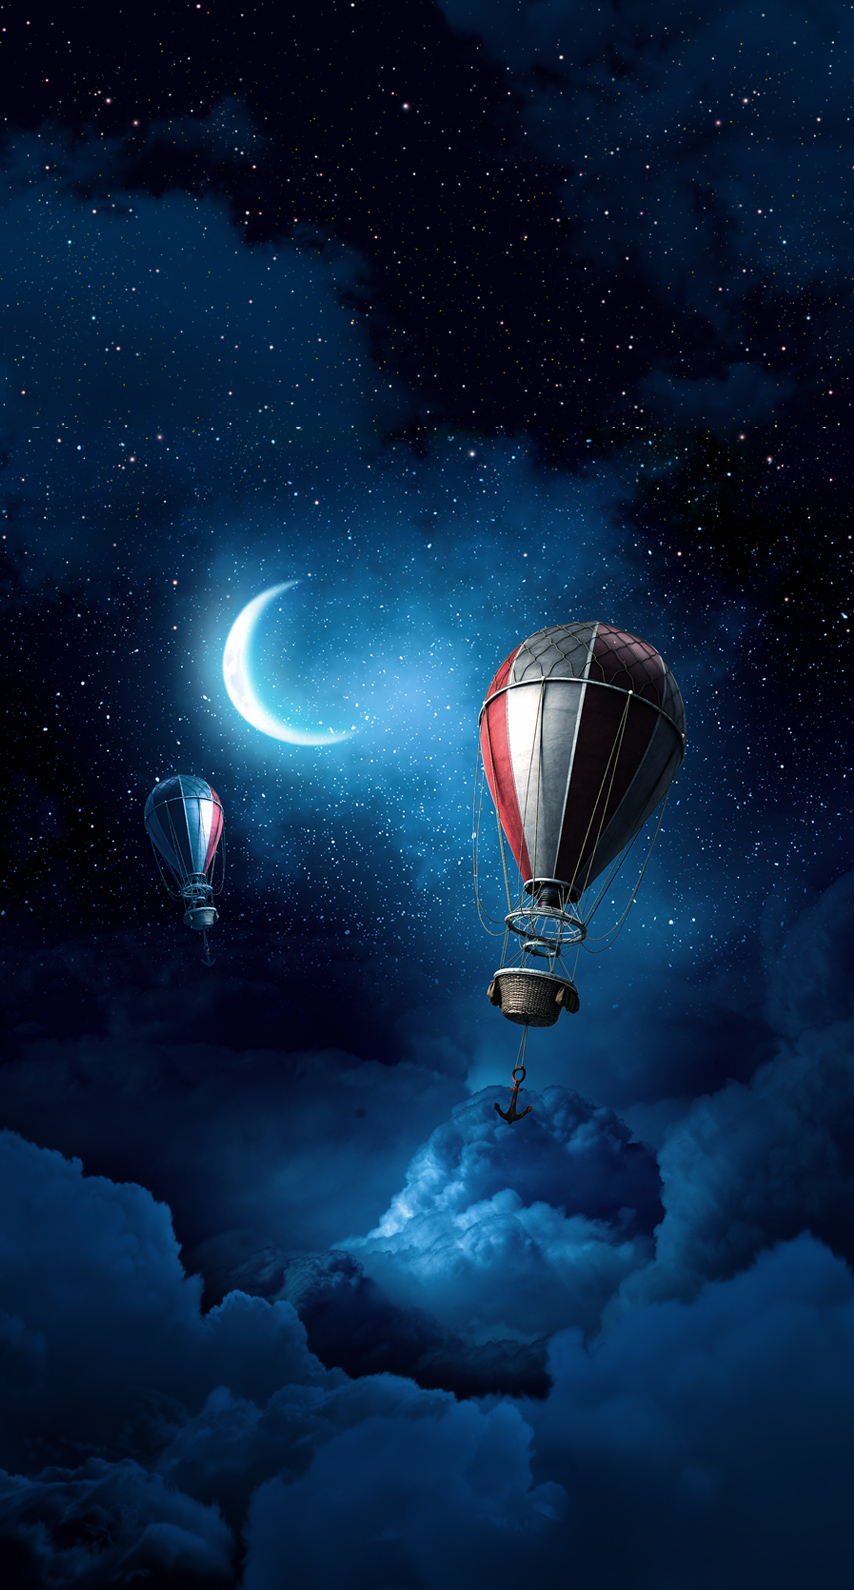 moon, balloon